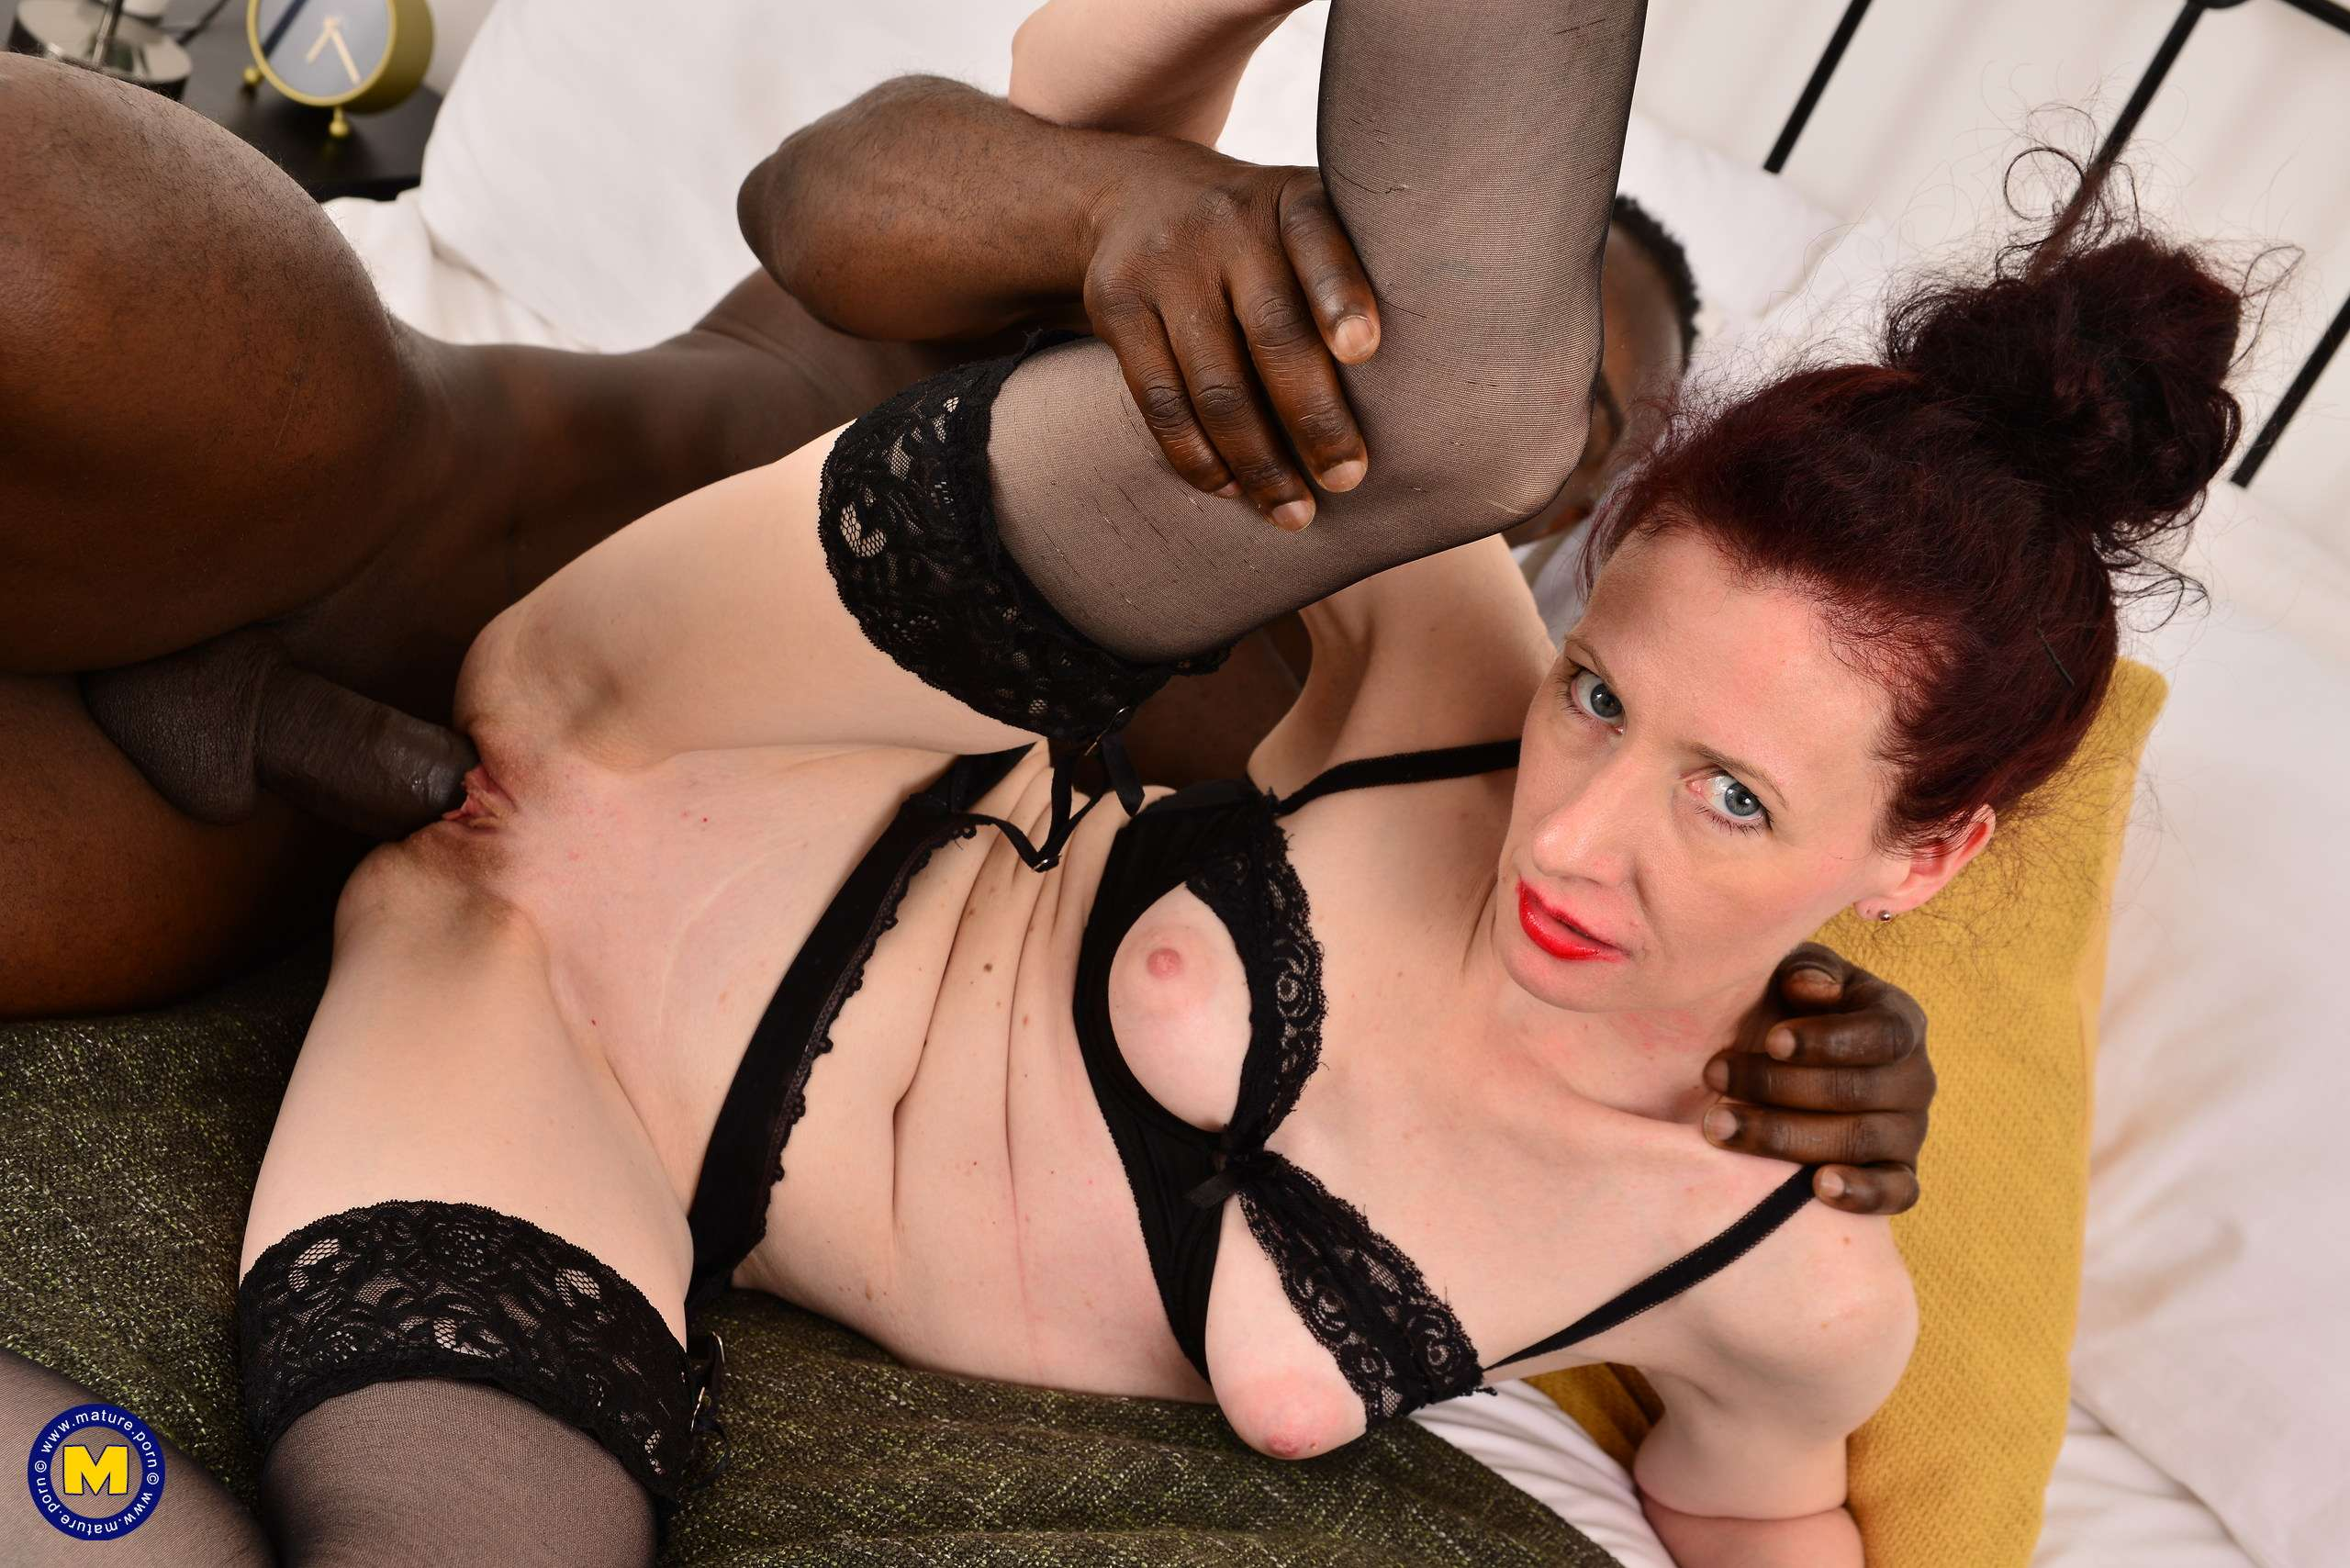 Horny British mature lady munching on a big black cock